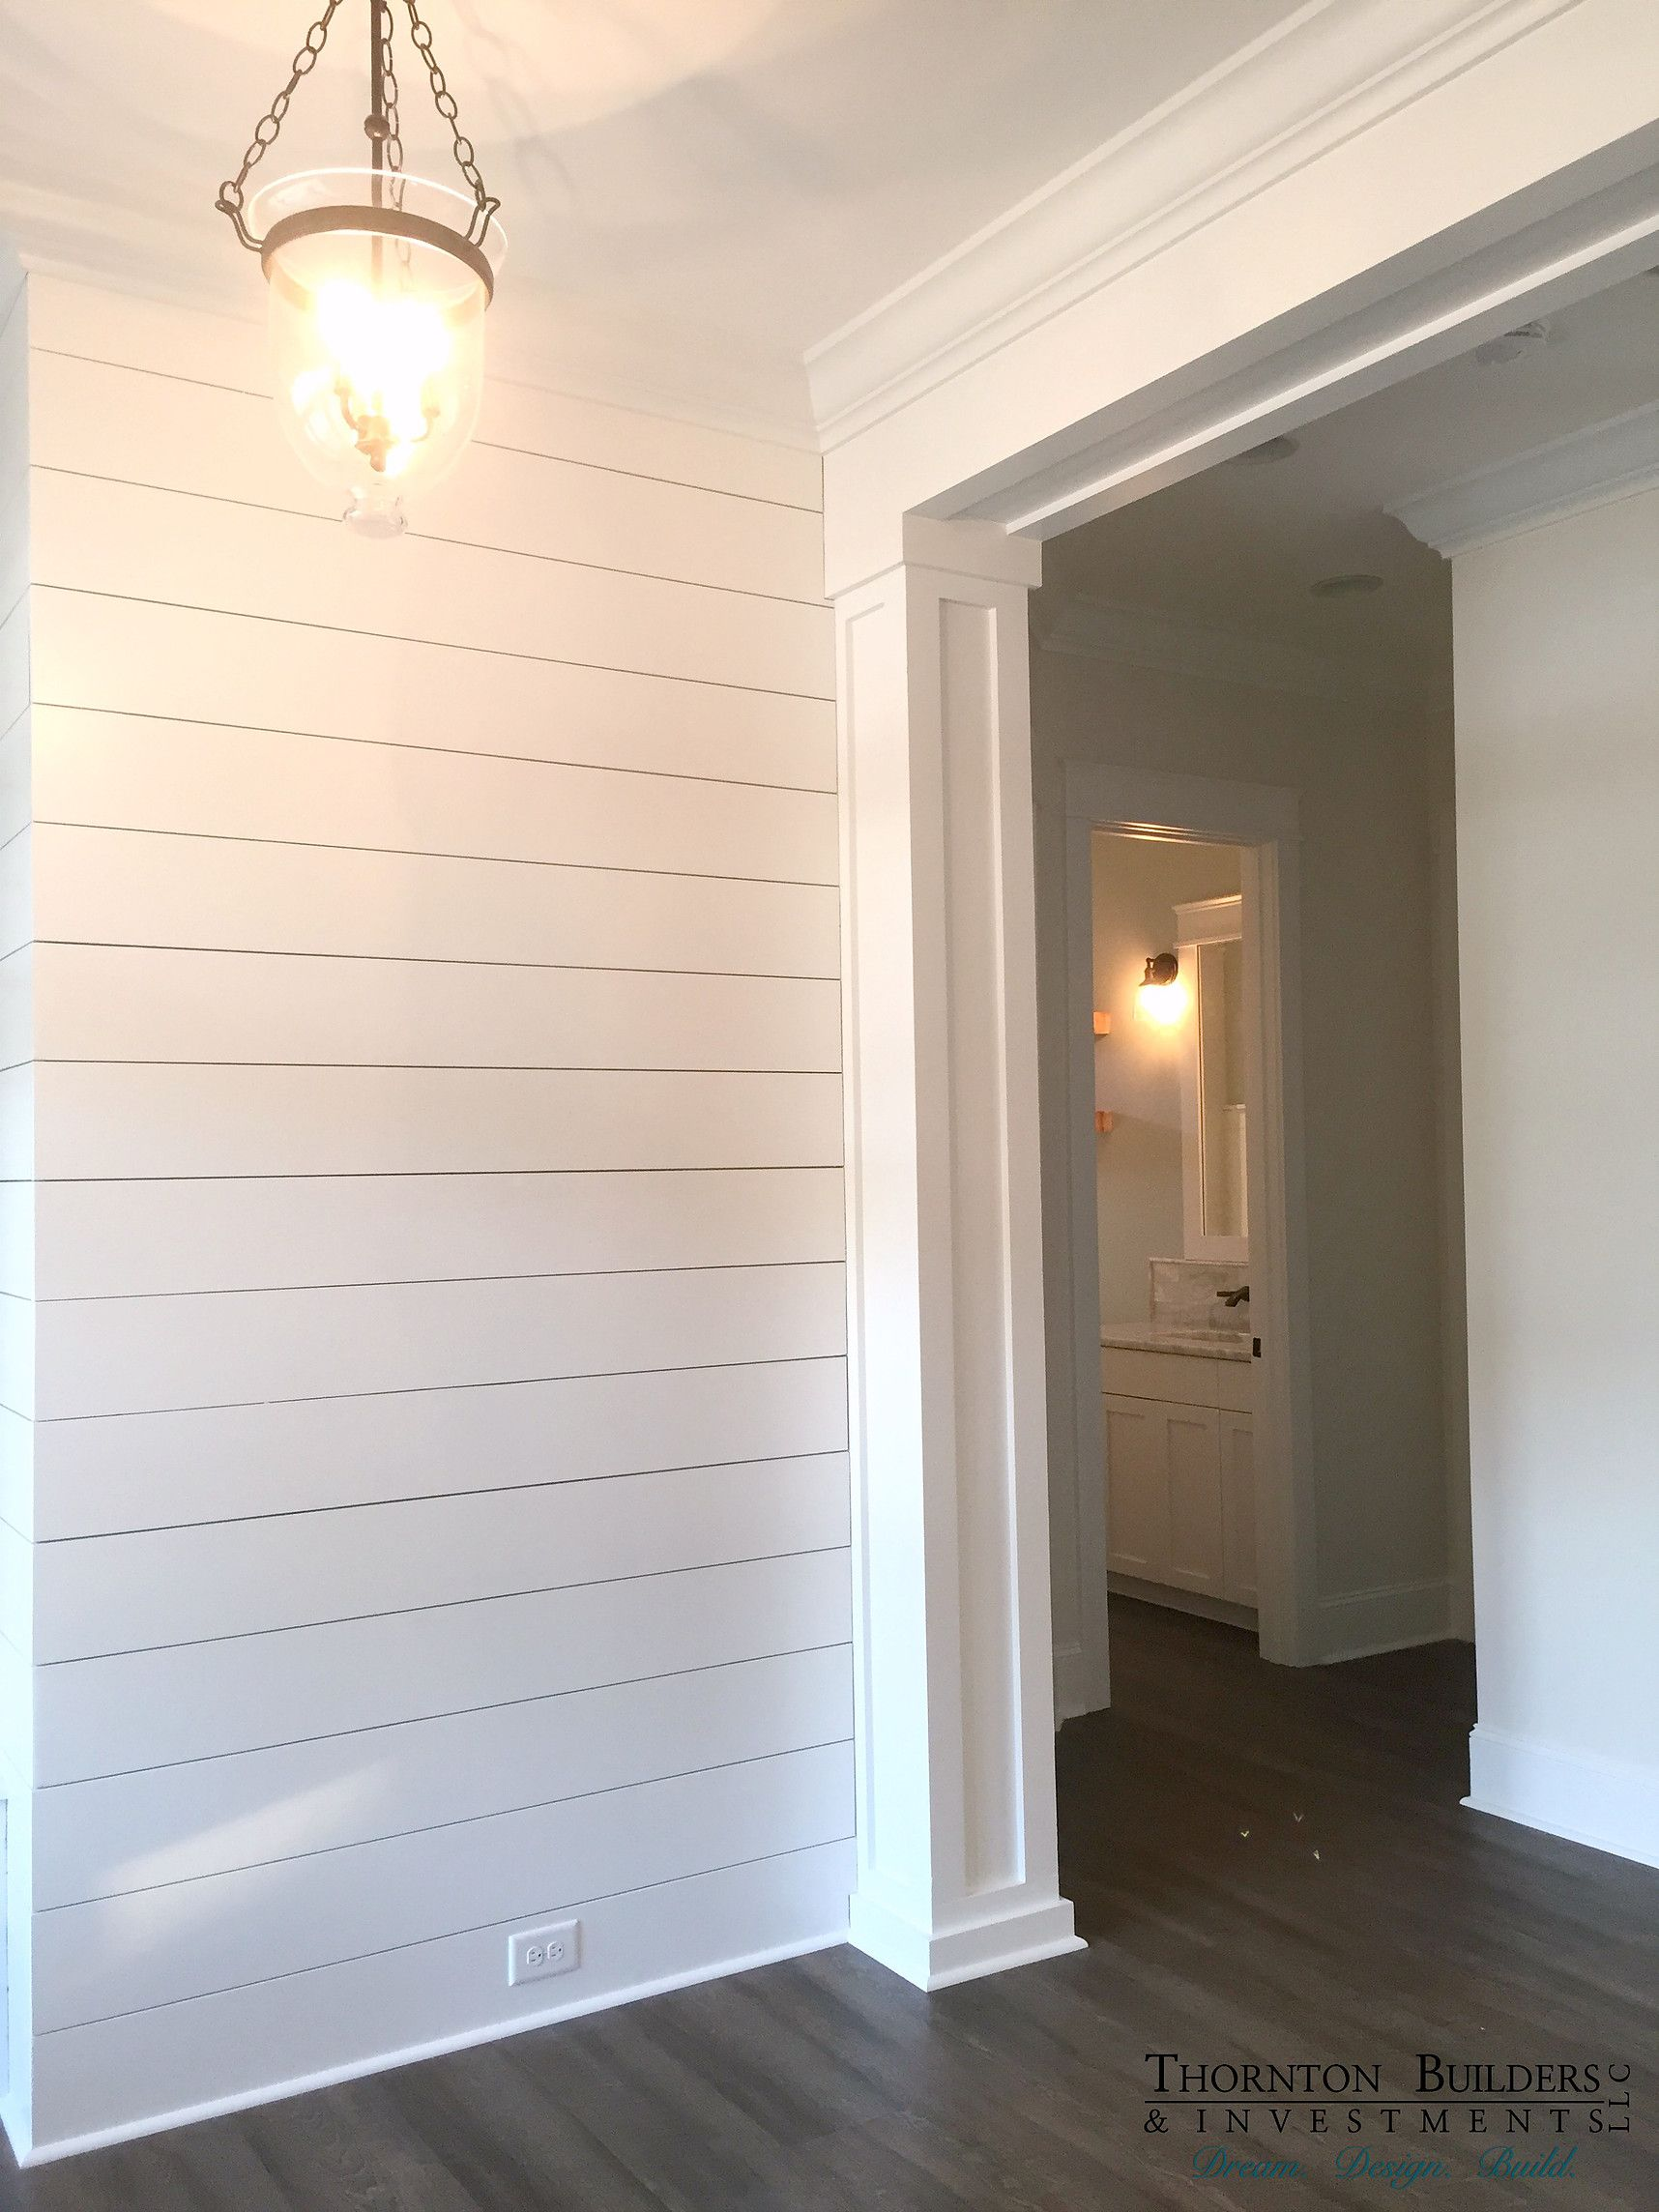 Thornton builders the modern farmhouse barn style also best home interior millwork images on pinterest in rh